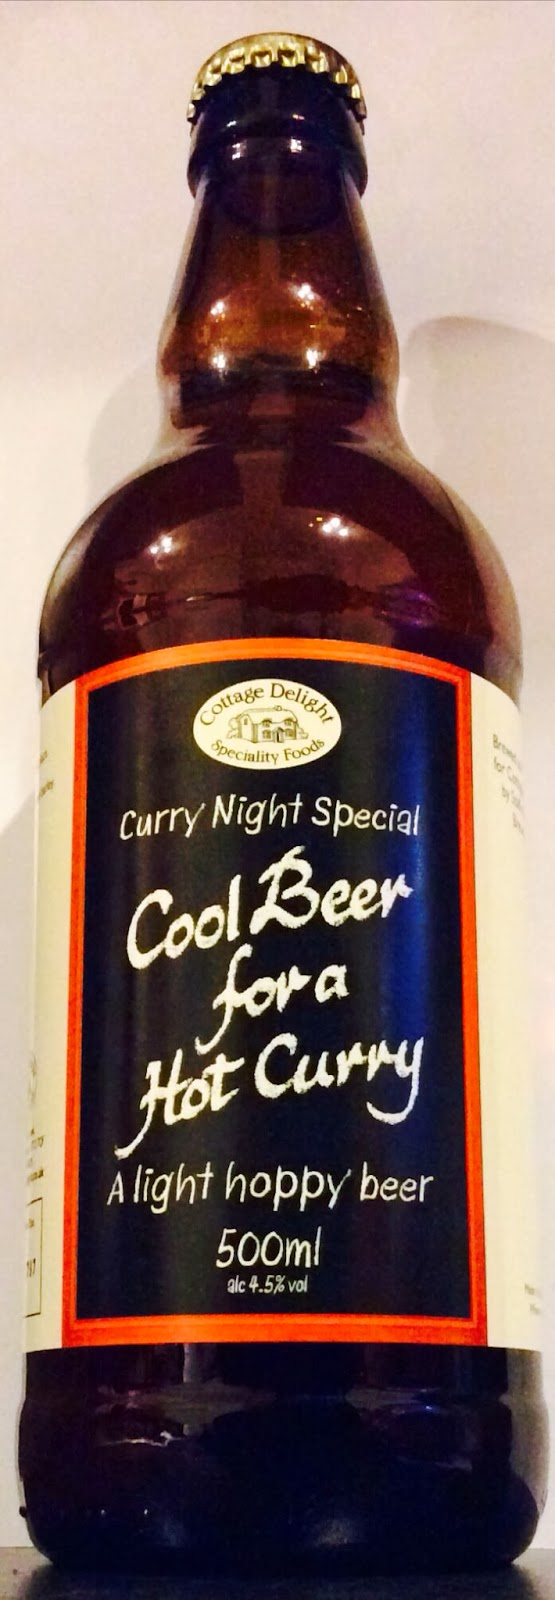 Cool Beer for a Hot Curry (Staffordshire Brewery)